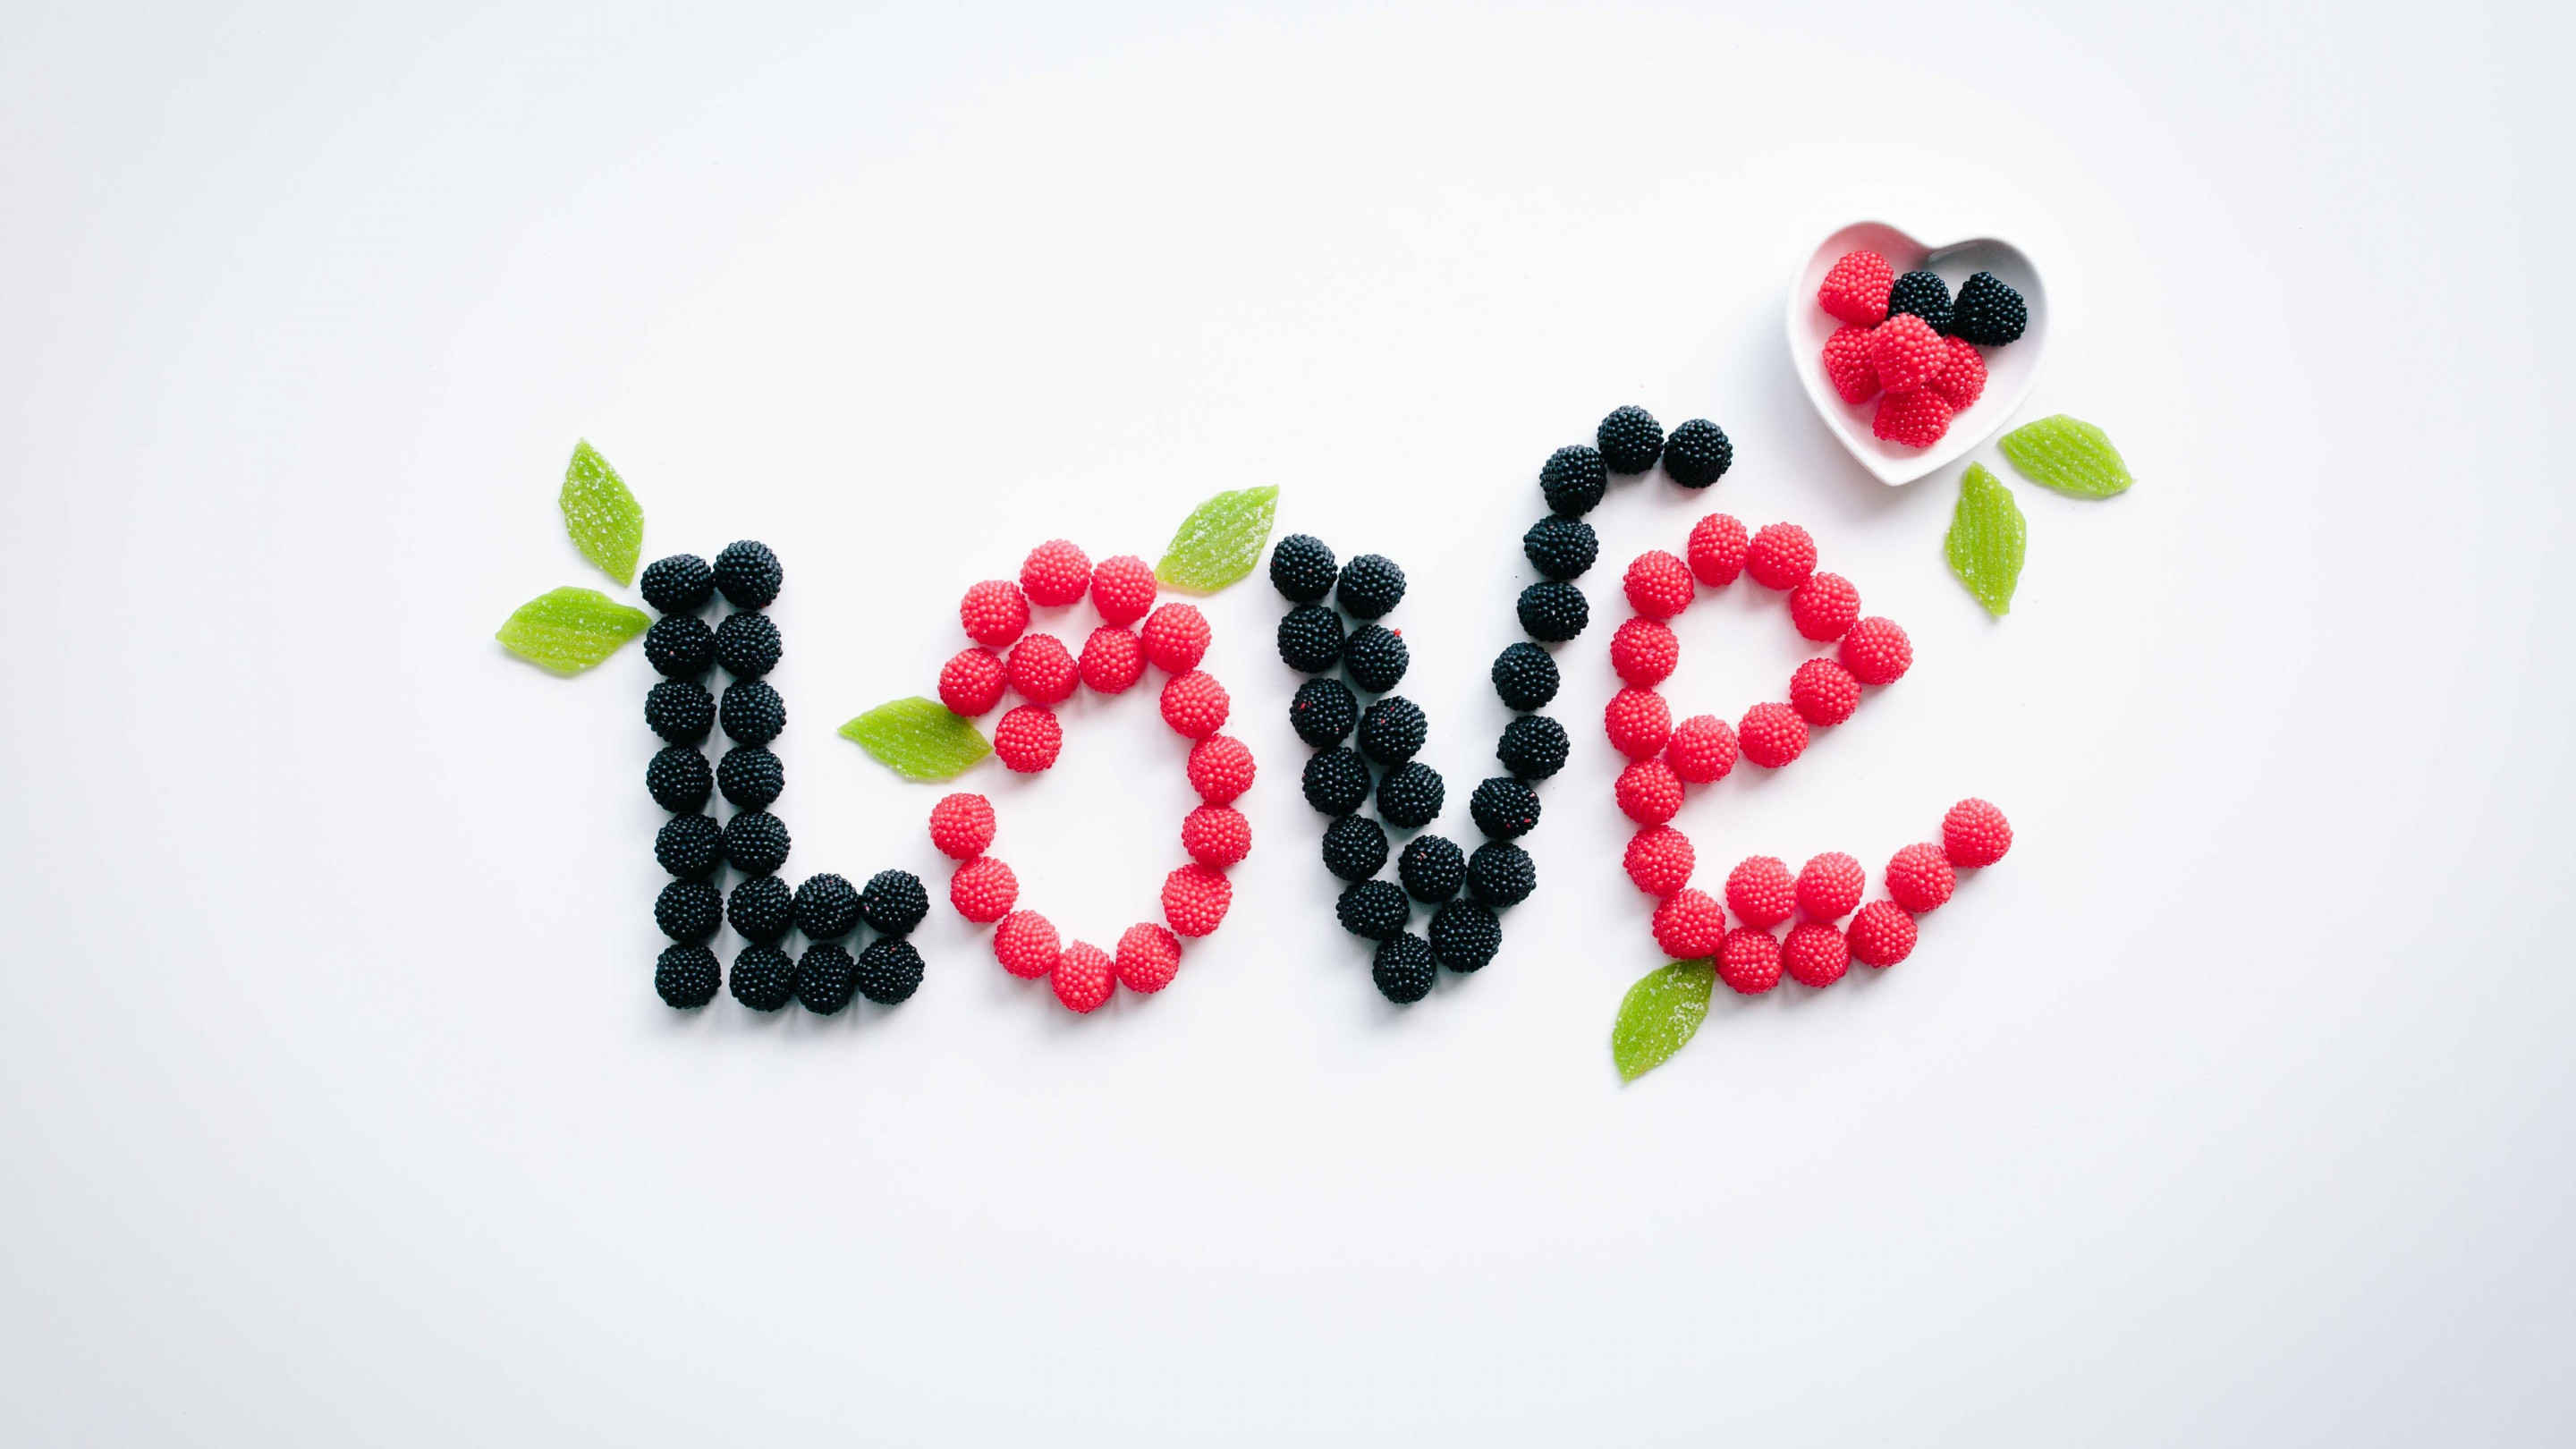 Love message with fruits wallpaper 2880x1620